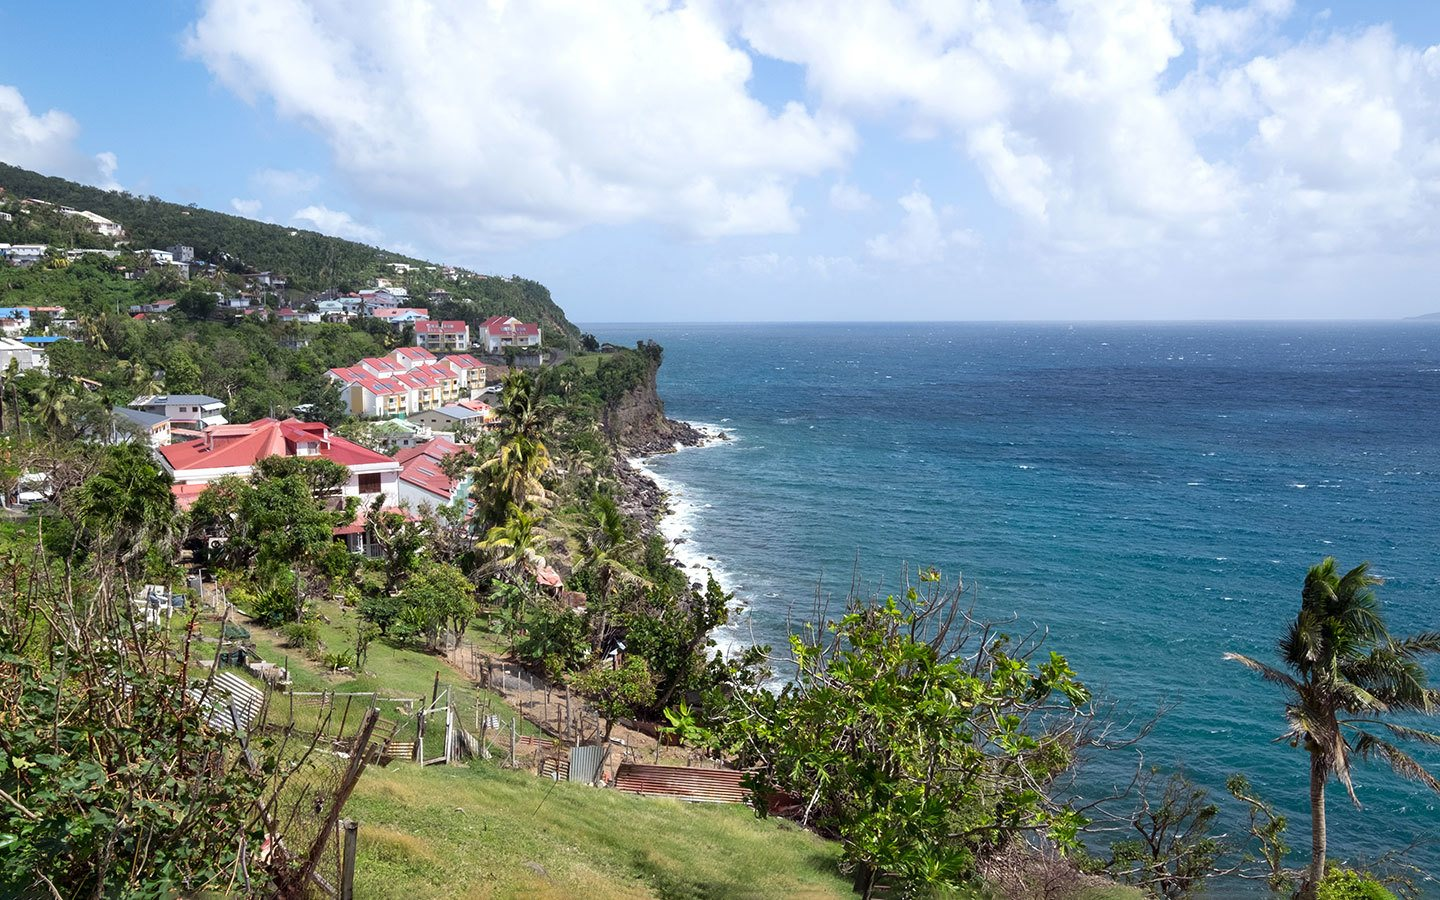 Views along the coast of Basse-Terre, Guadeloupe